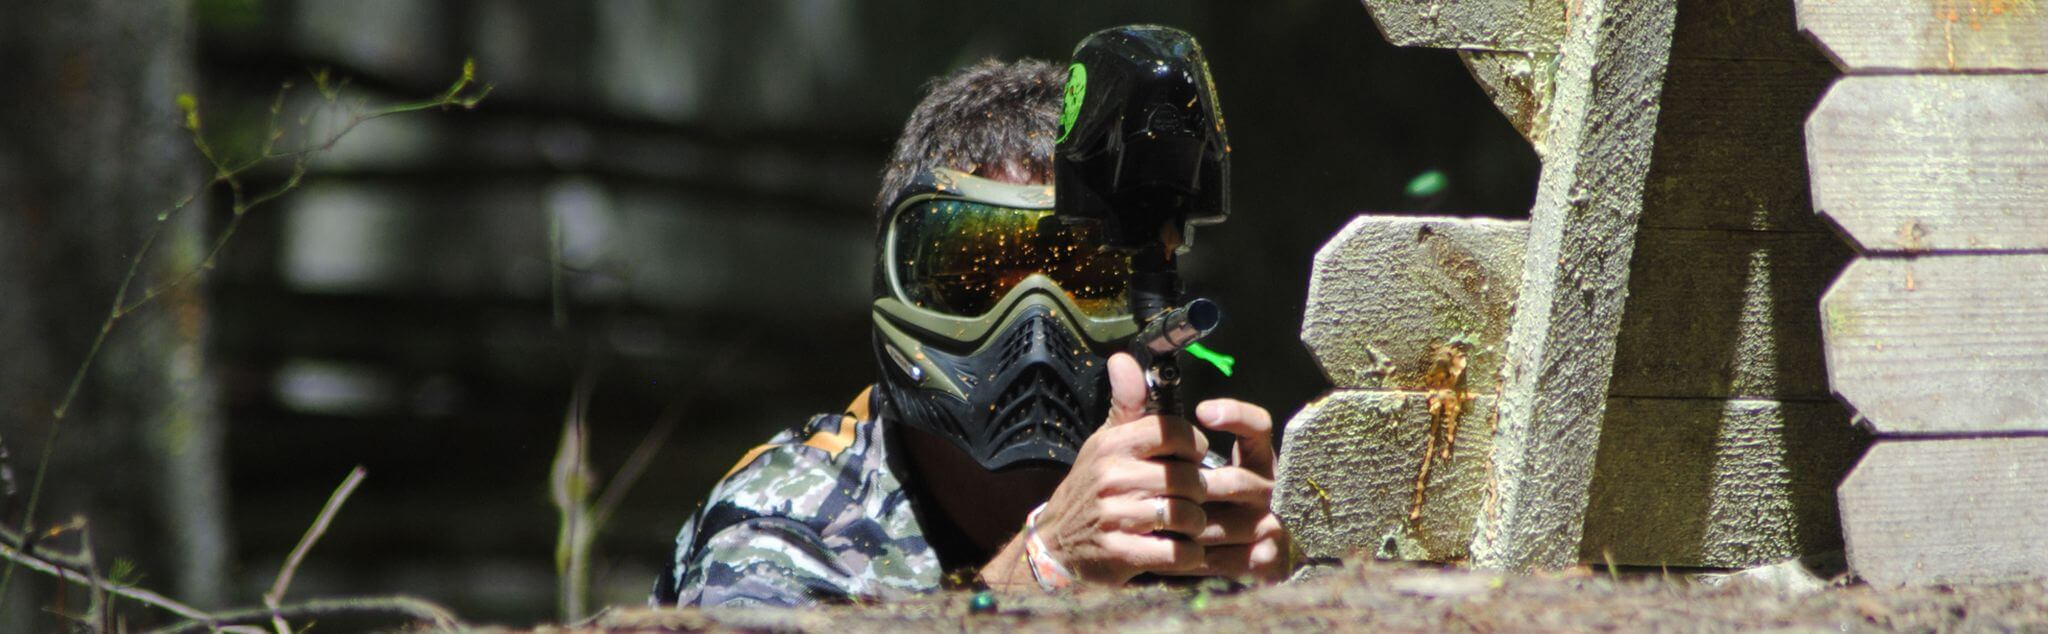 Paintball en Ponferrada